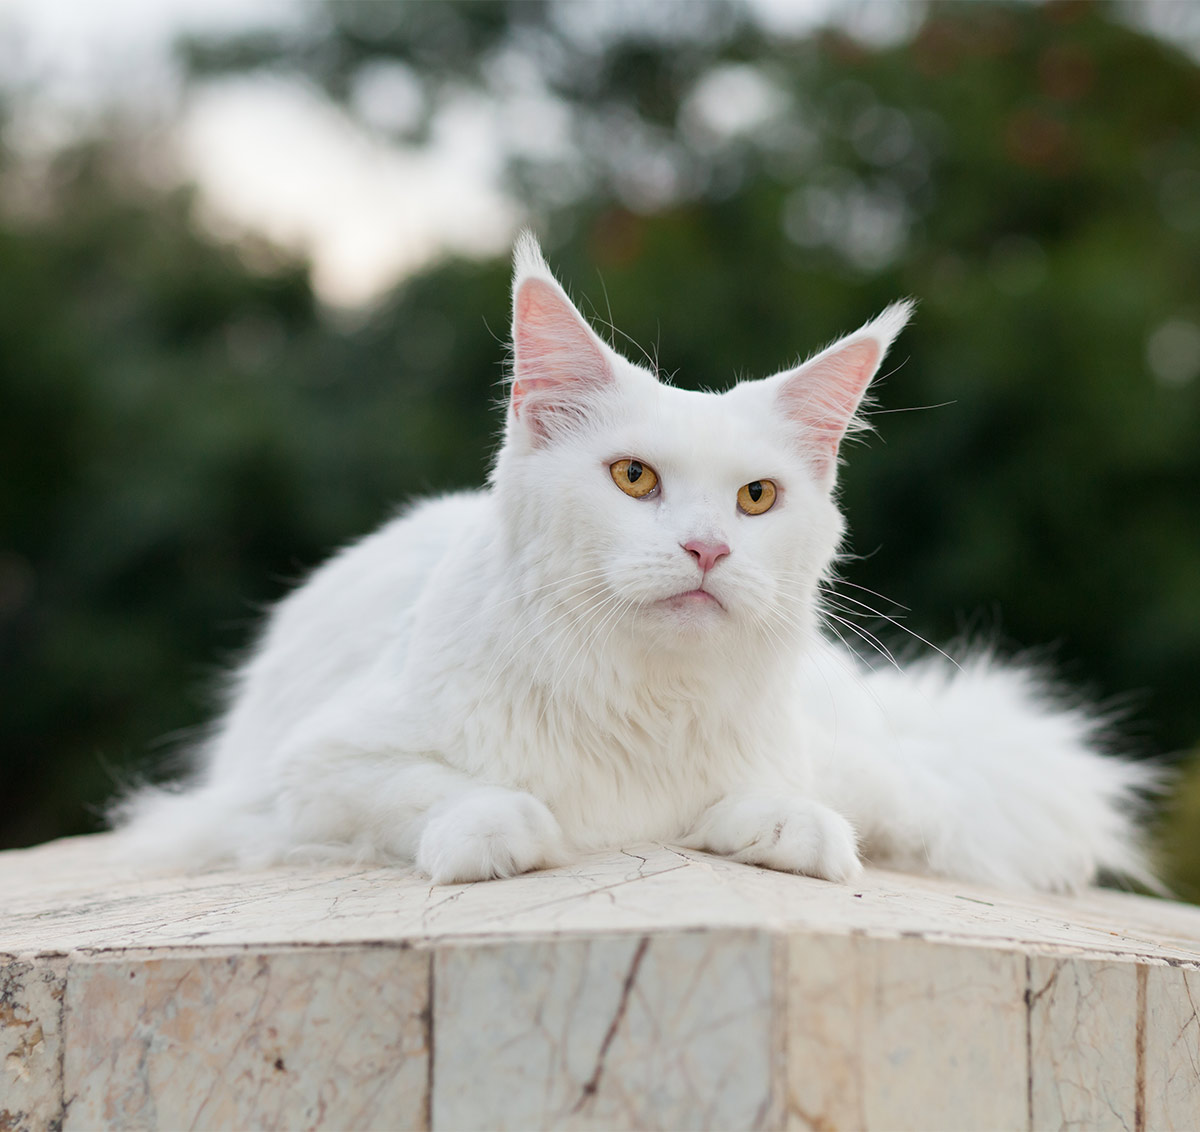 White Cat With Orange Markings